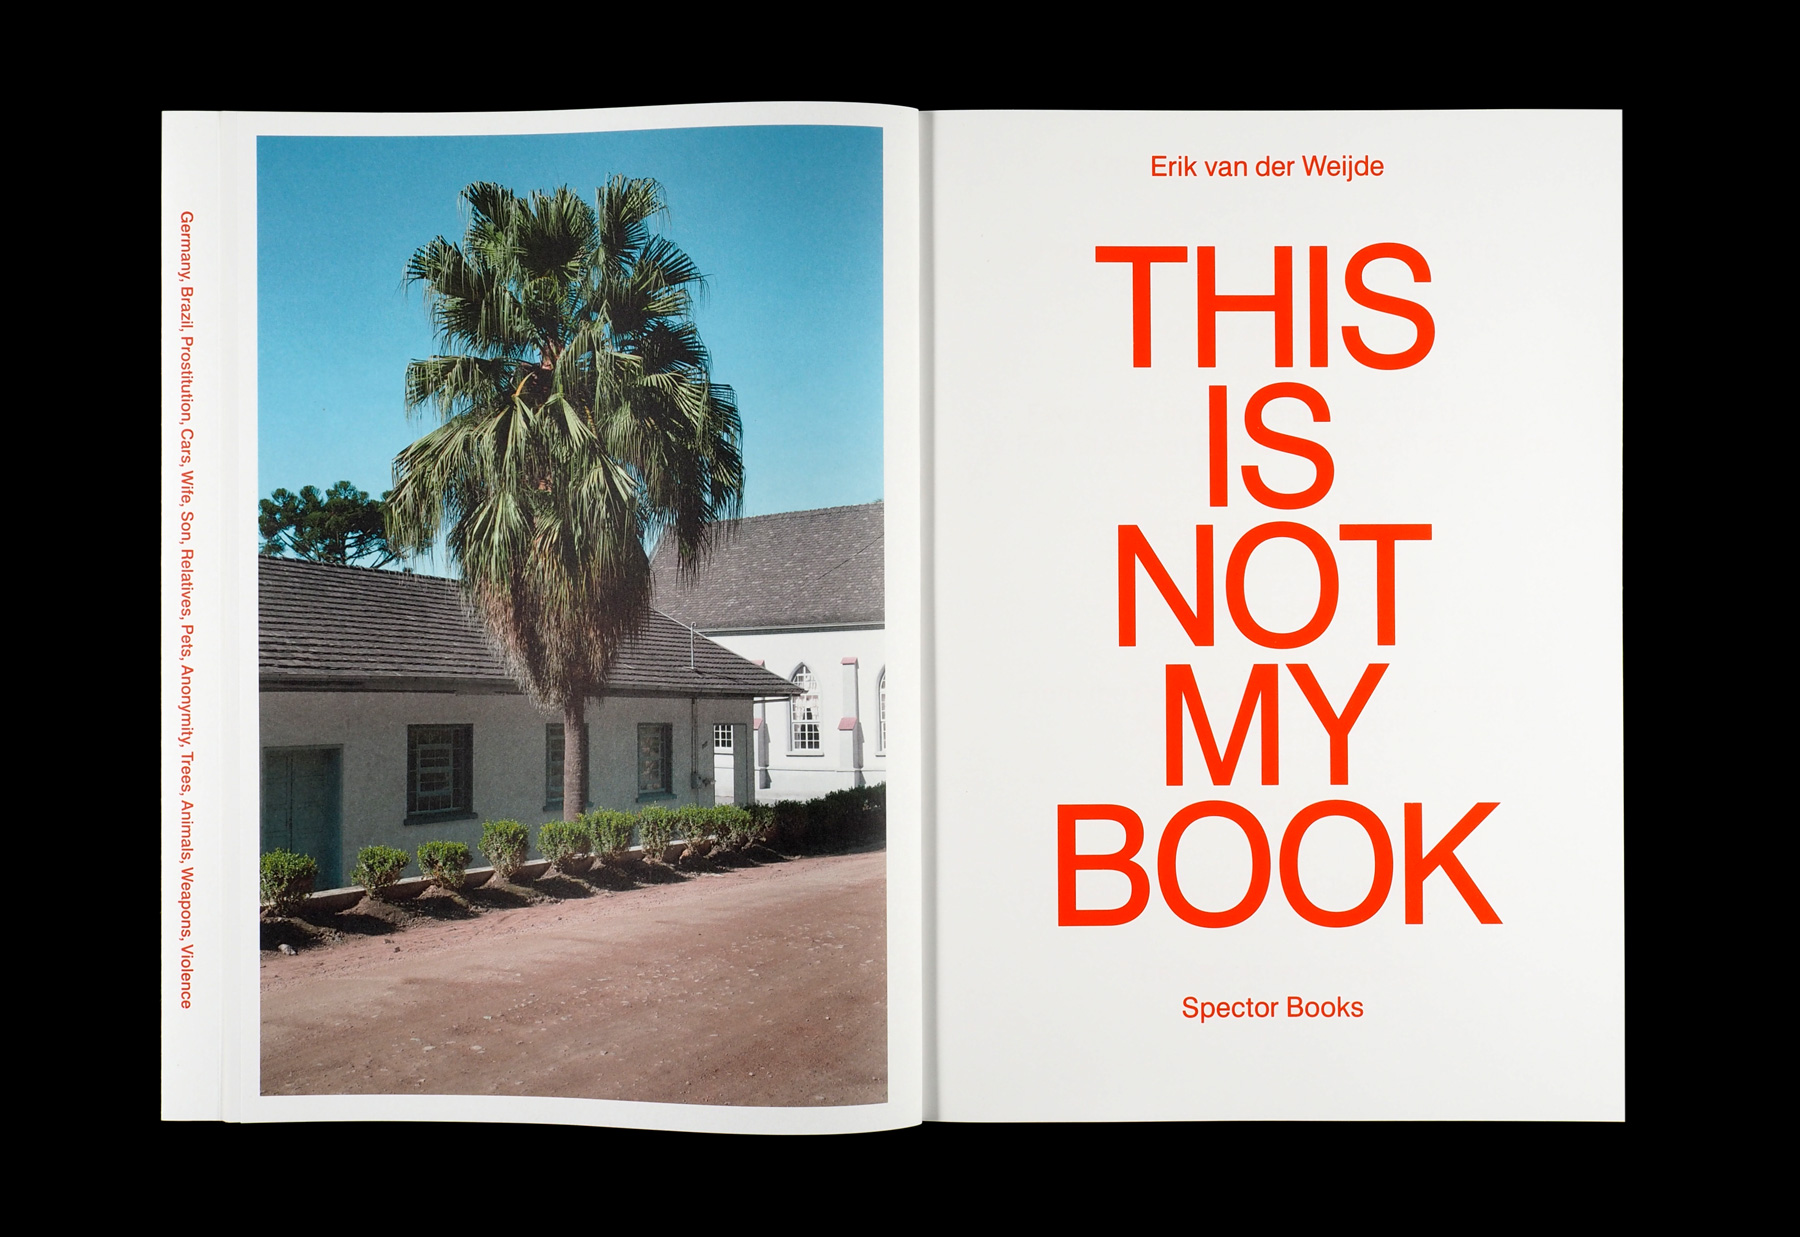 Fabian Bremer / Pascal Storz: Erik van der Weijde, This Is Not My Book